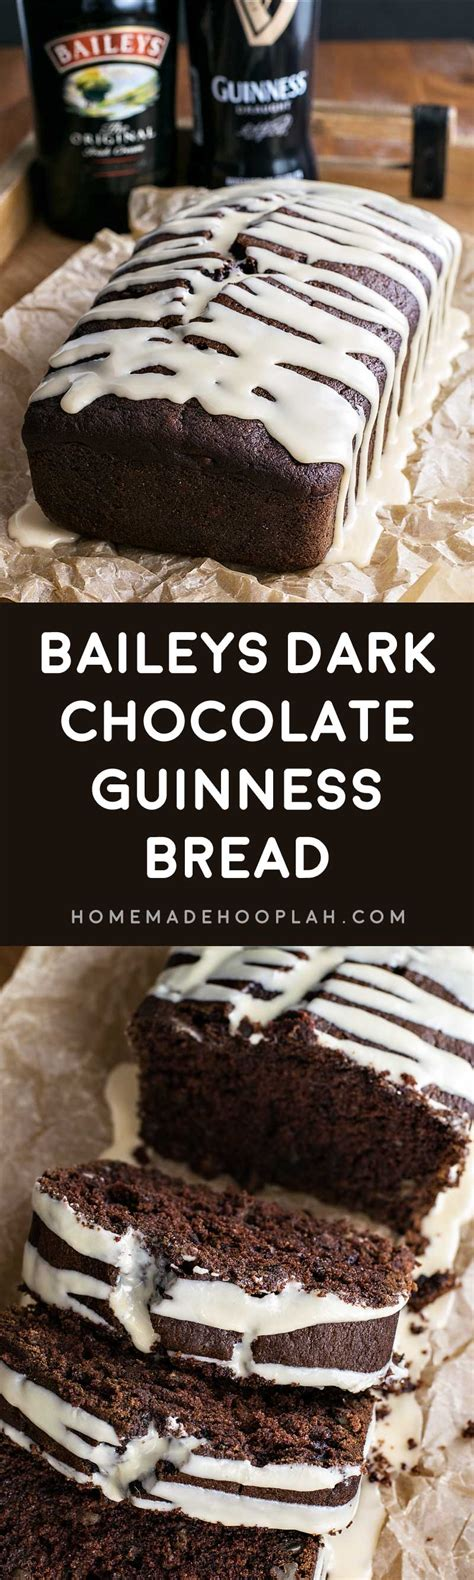 baileys dark chocolate guinness bread homemade hooplah